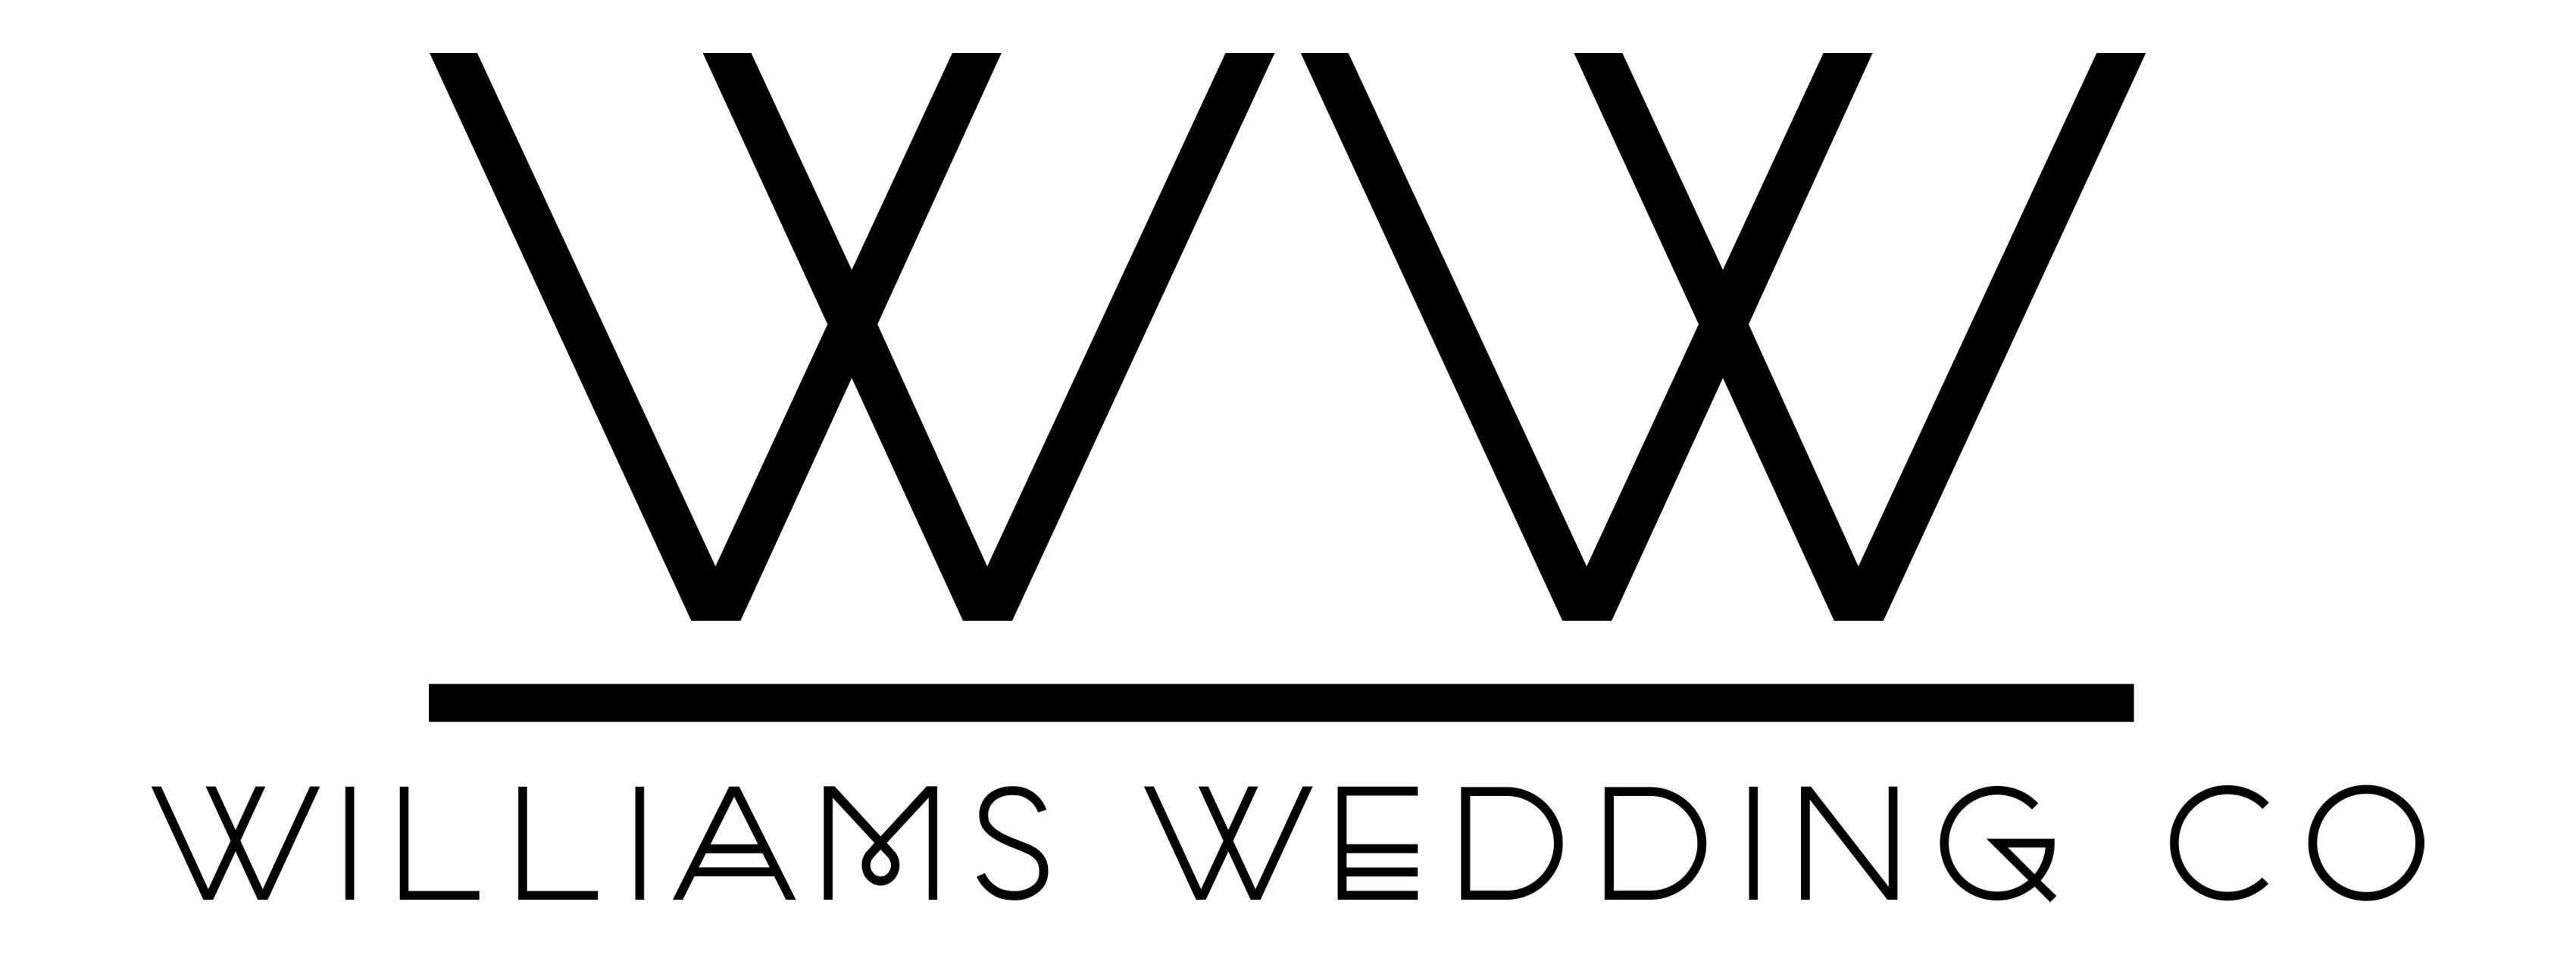 Williams Wedding Co – Montgomery County, PA, Full Service Wedding Film, Photographer, DJ, Live Music